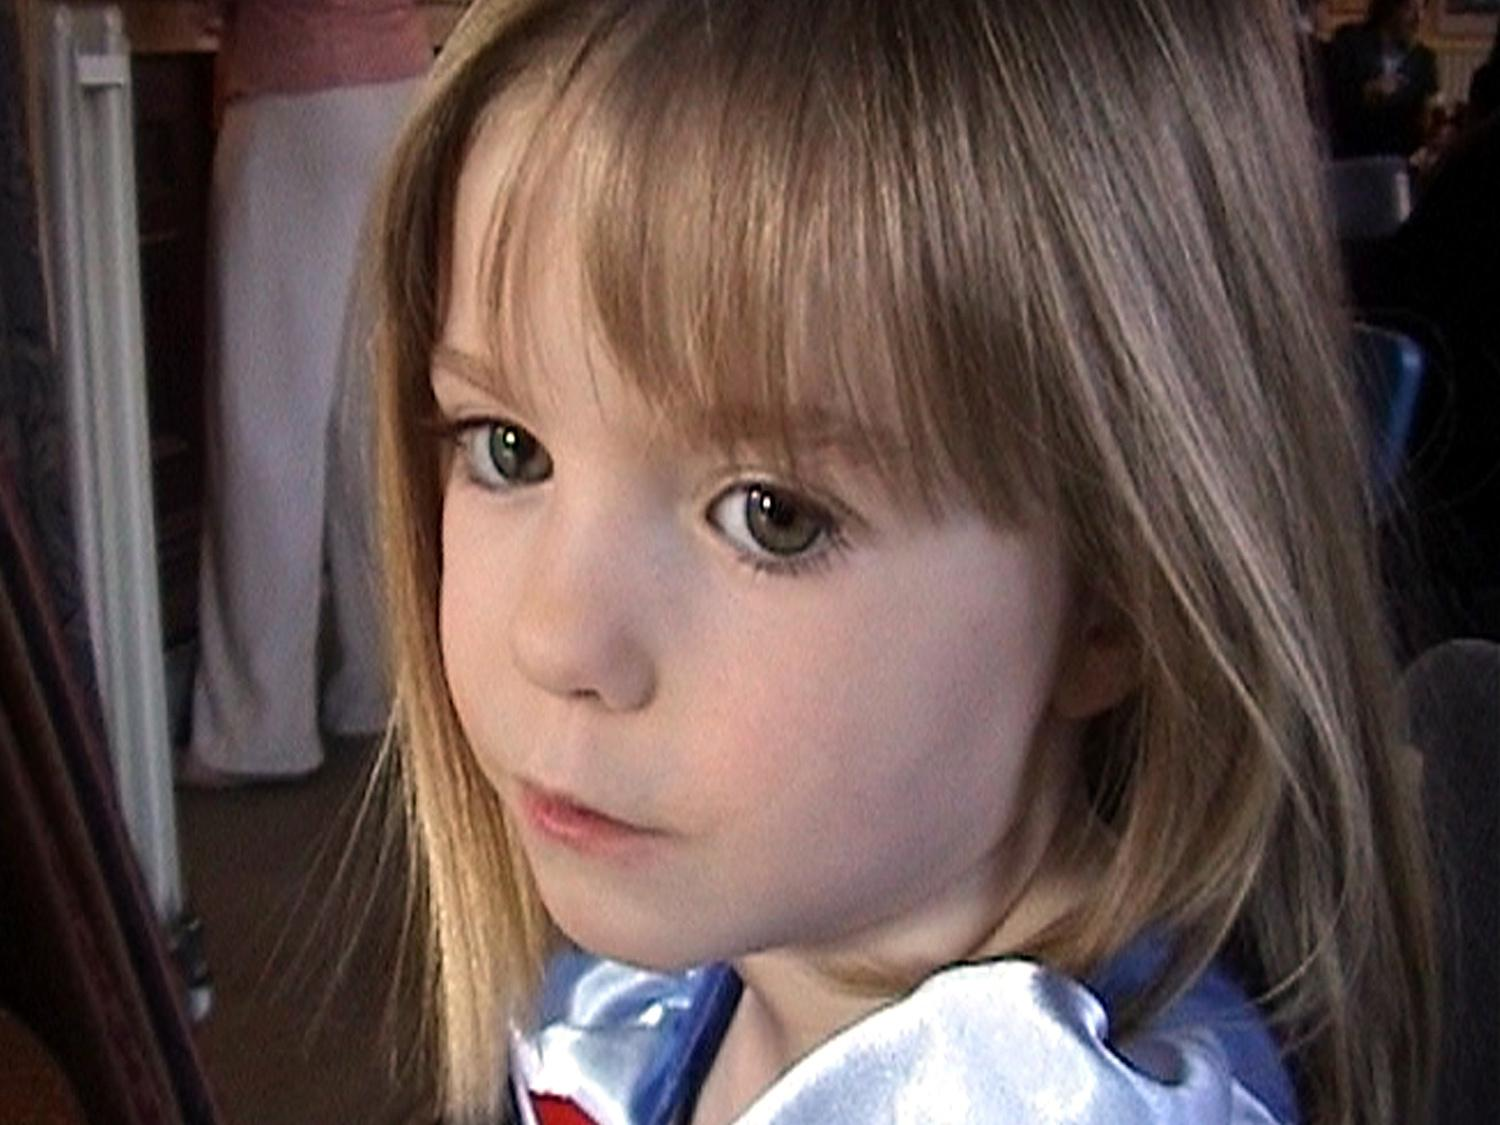 Madeleine McCann headshot, British girl  missing during a family holiday in the Algarve region of Portugal, photo